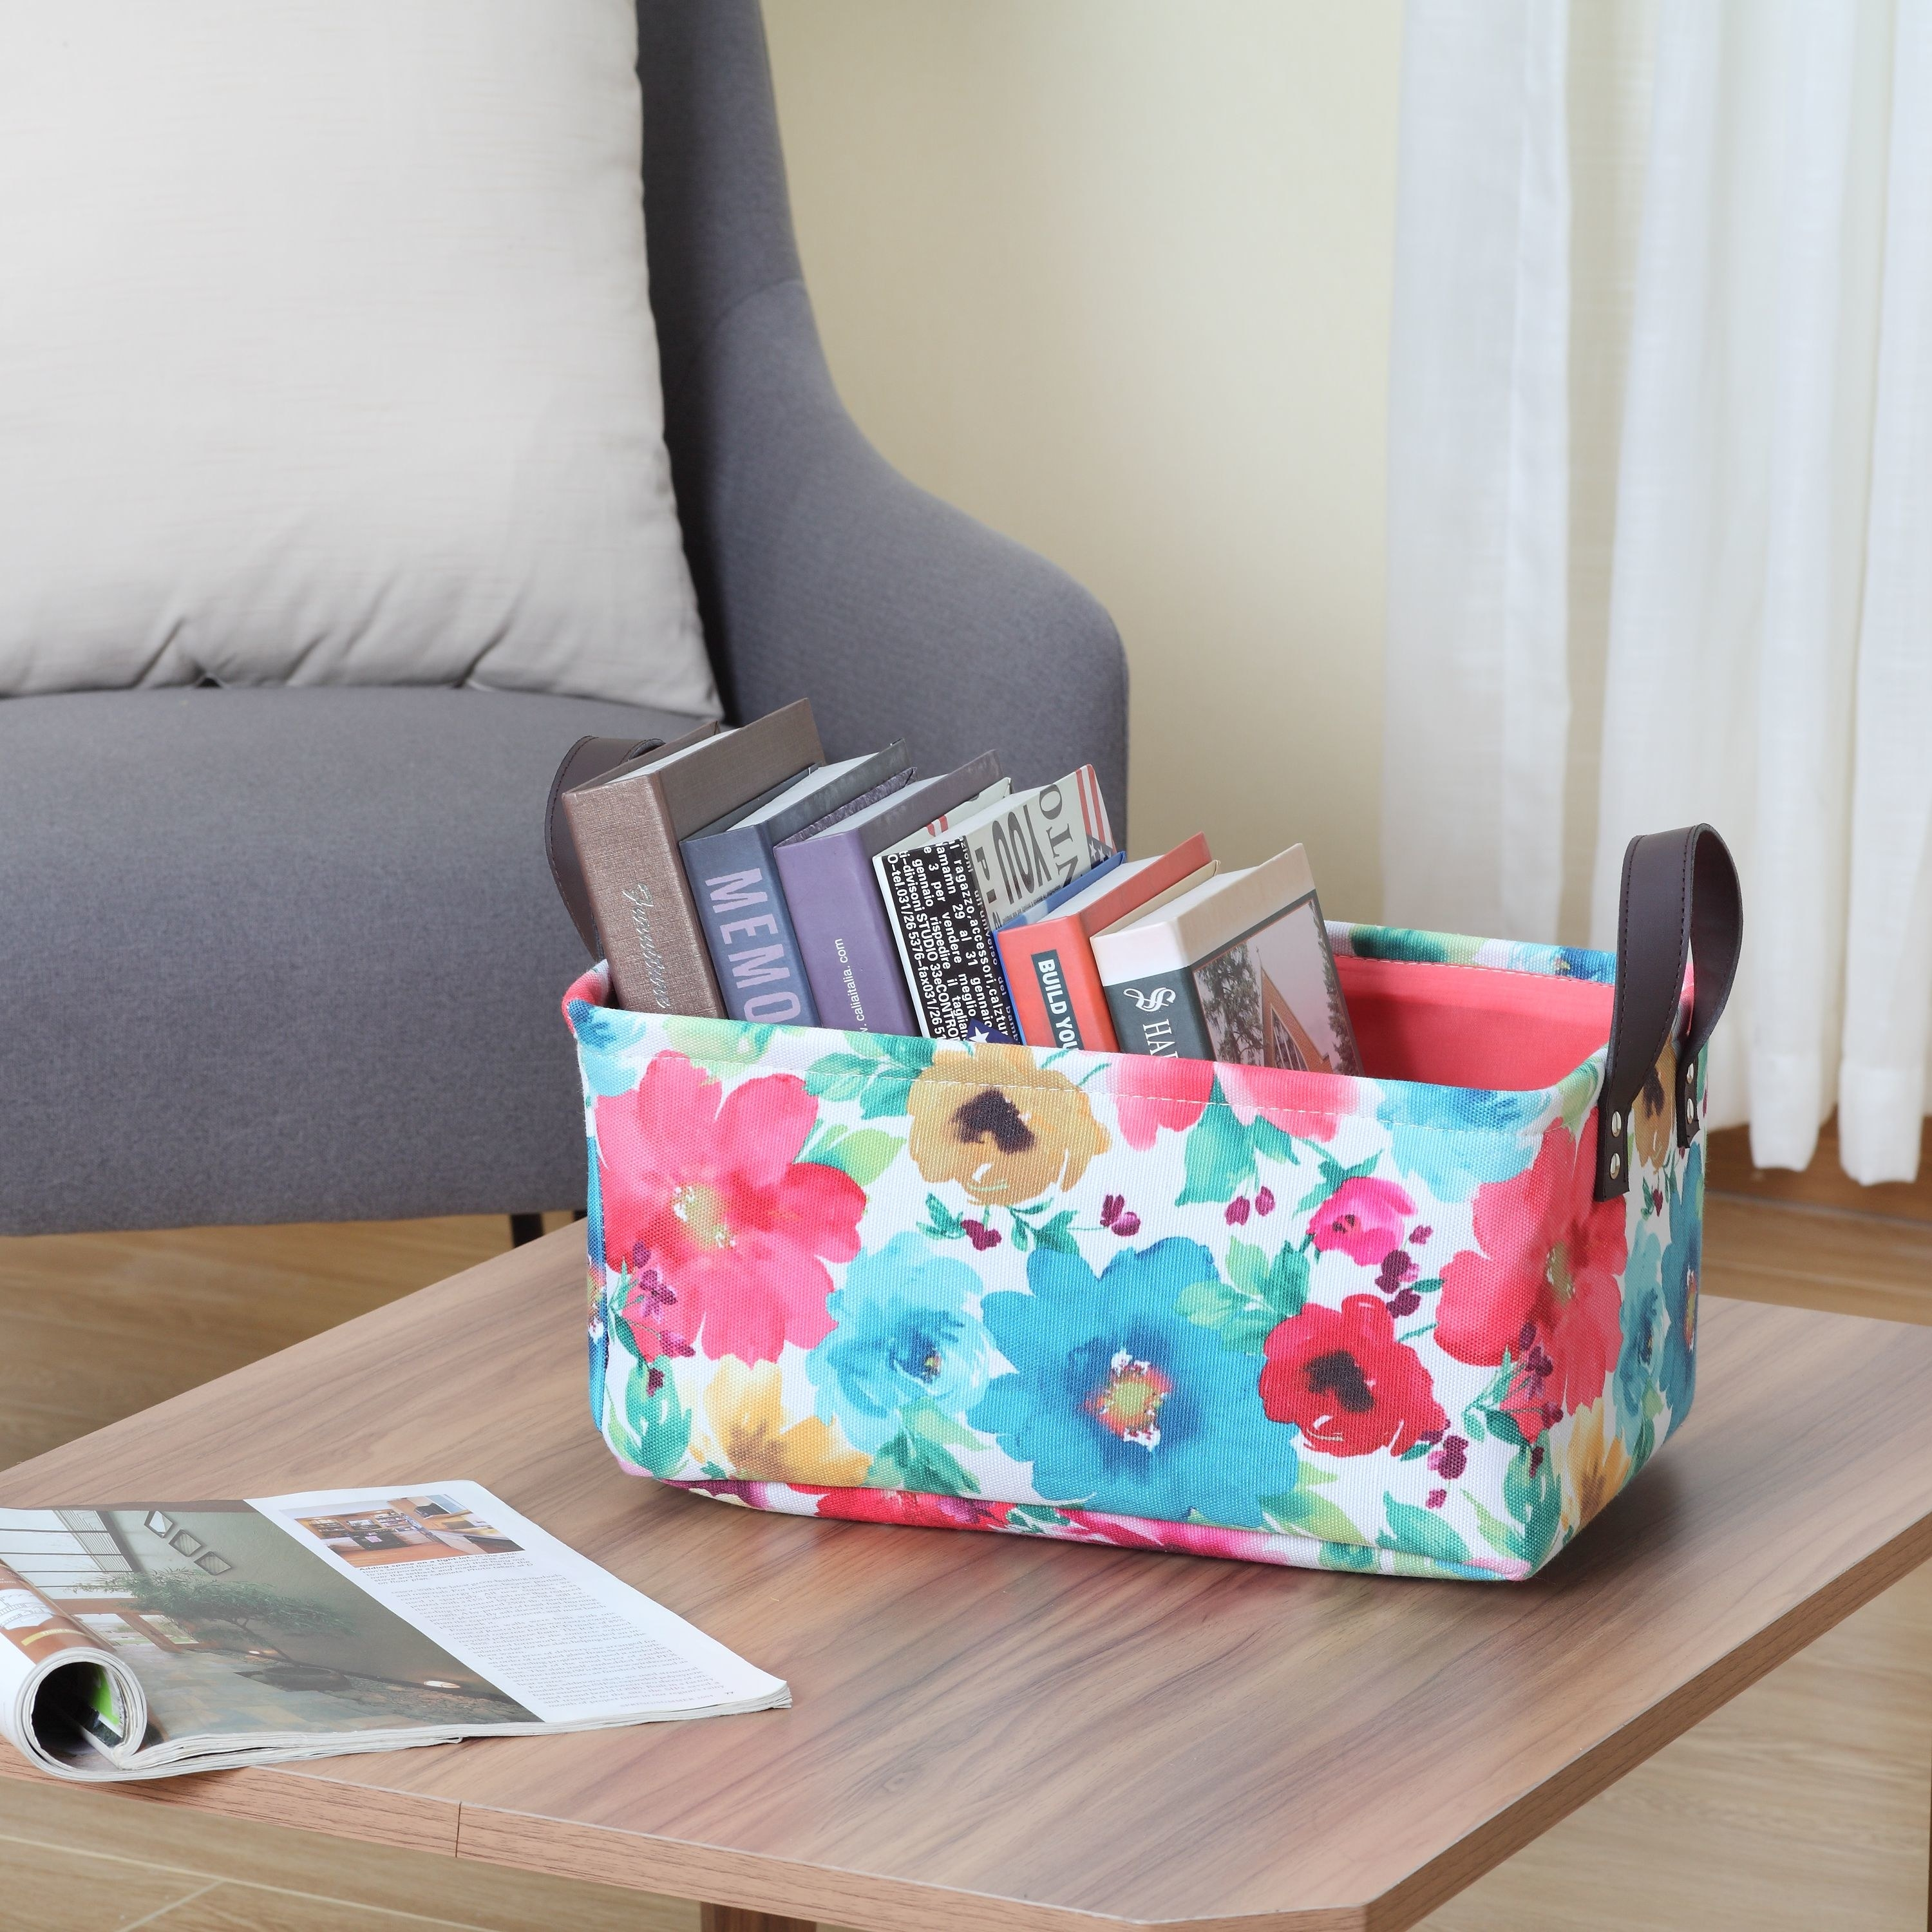 A colorful floral canvas tote on a coffee table storing books inside